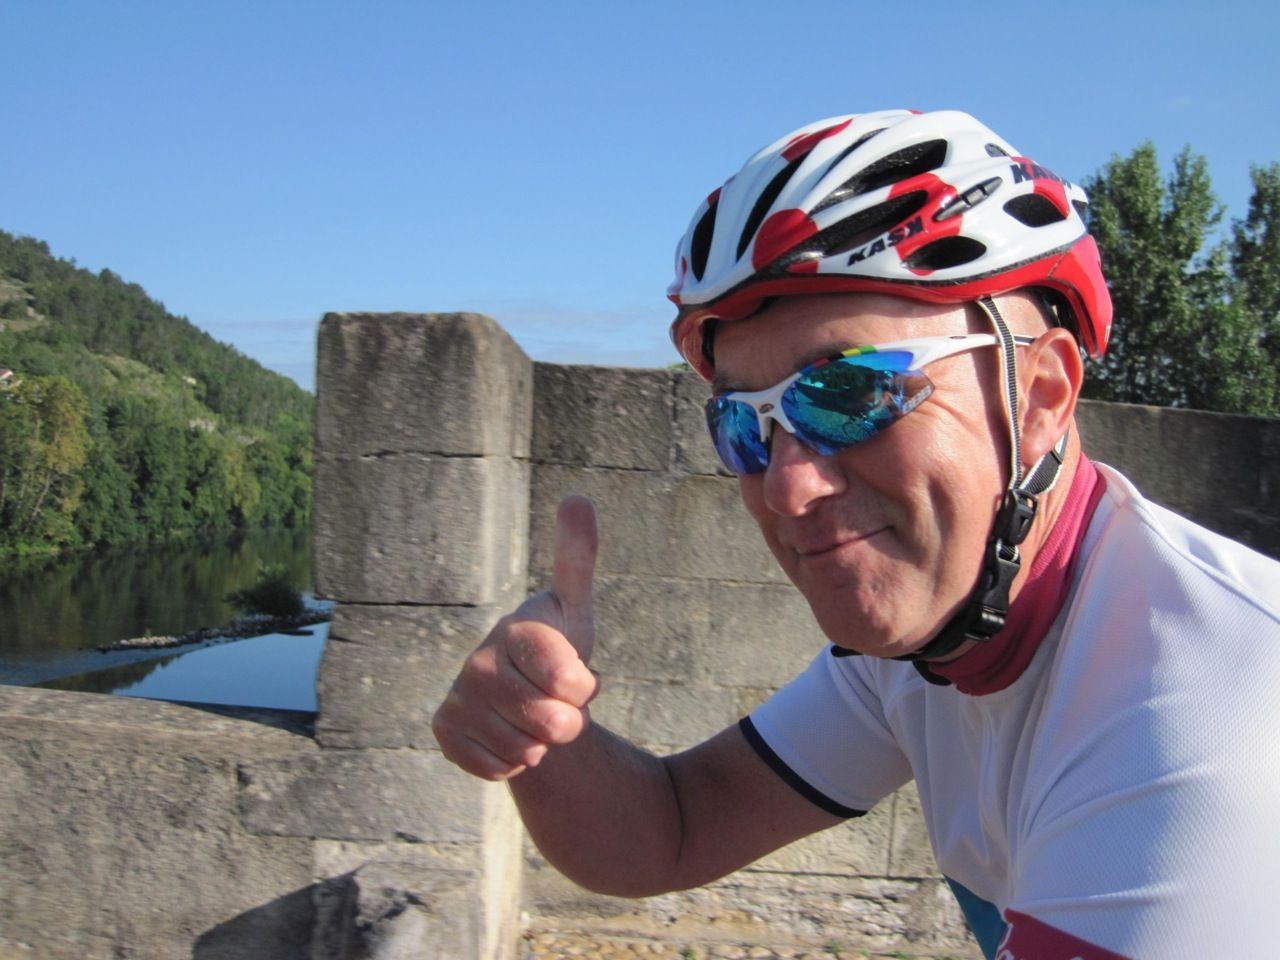 dordognecycling9.jpg - France - Dordogne Delights - Self-Guided Leisure Cycling Holiday - Leisure Cycling